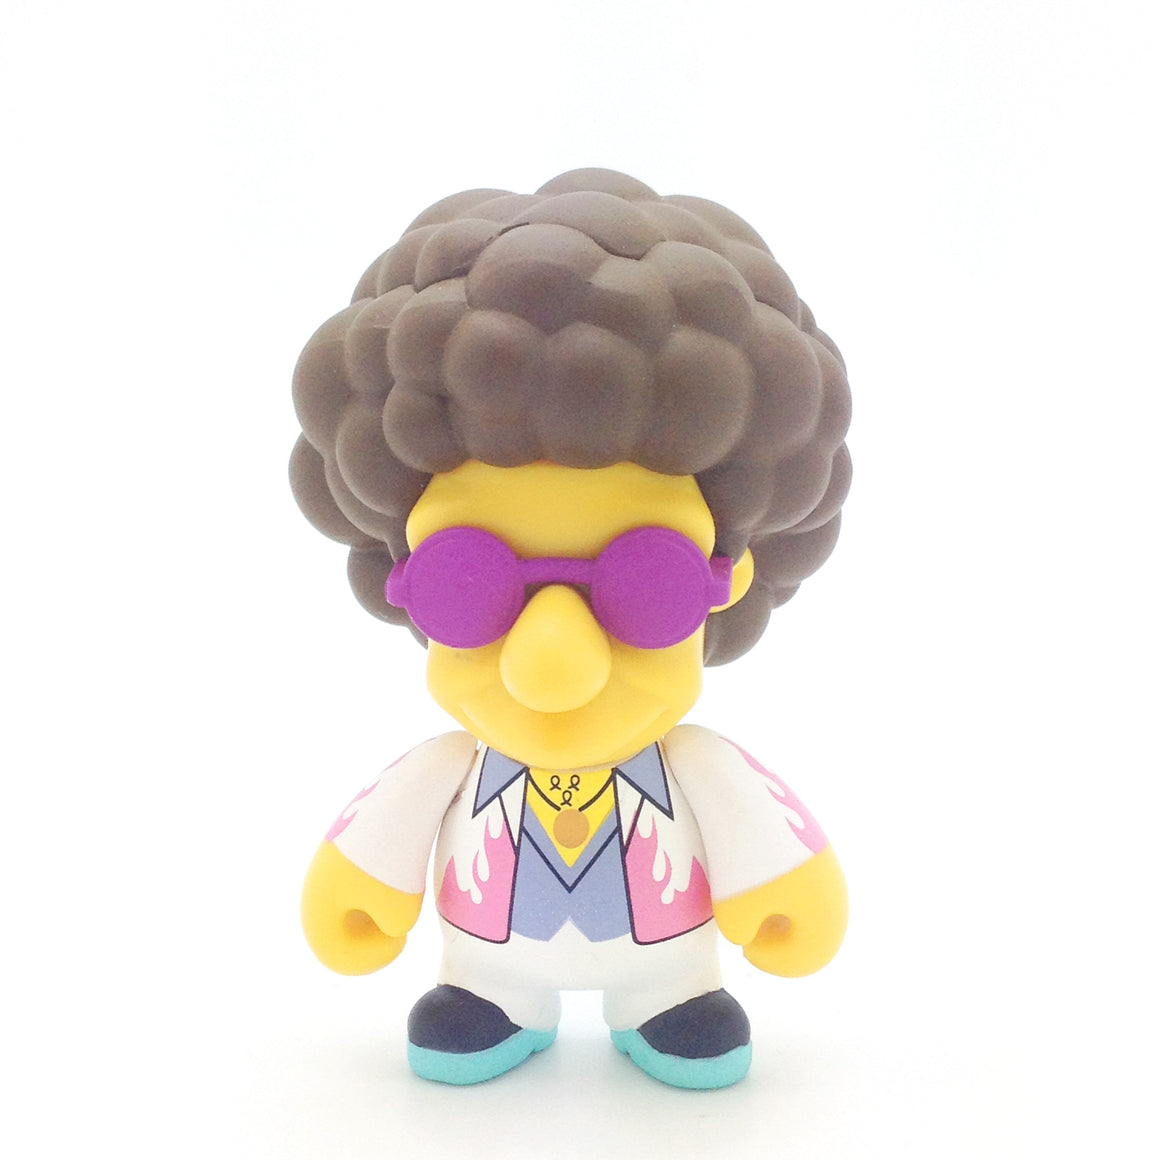 The Simpsons Mini Series 2 - Disco Stu - Mindzai